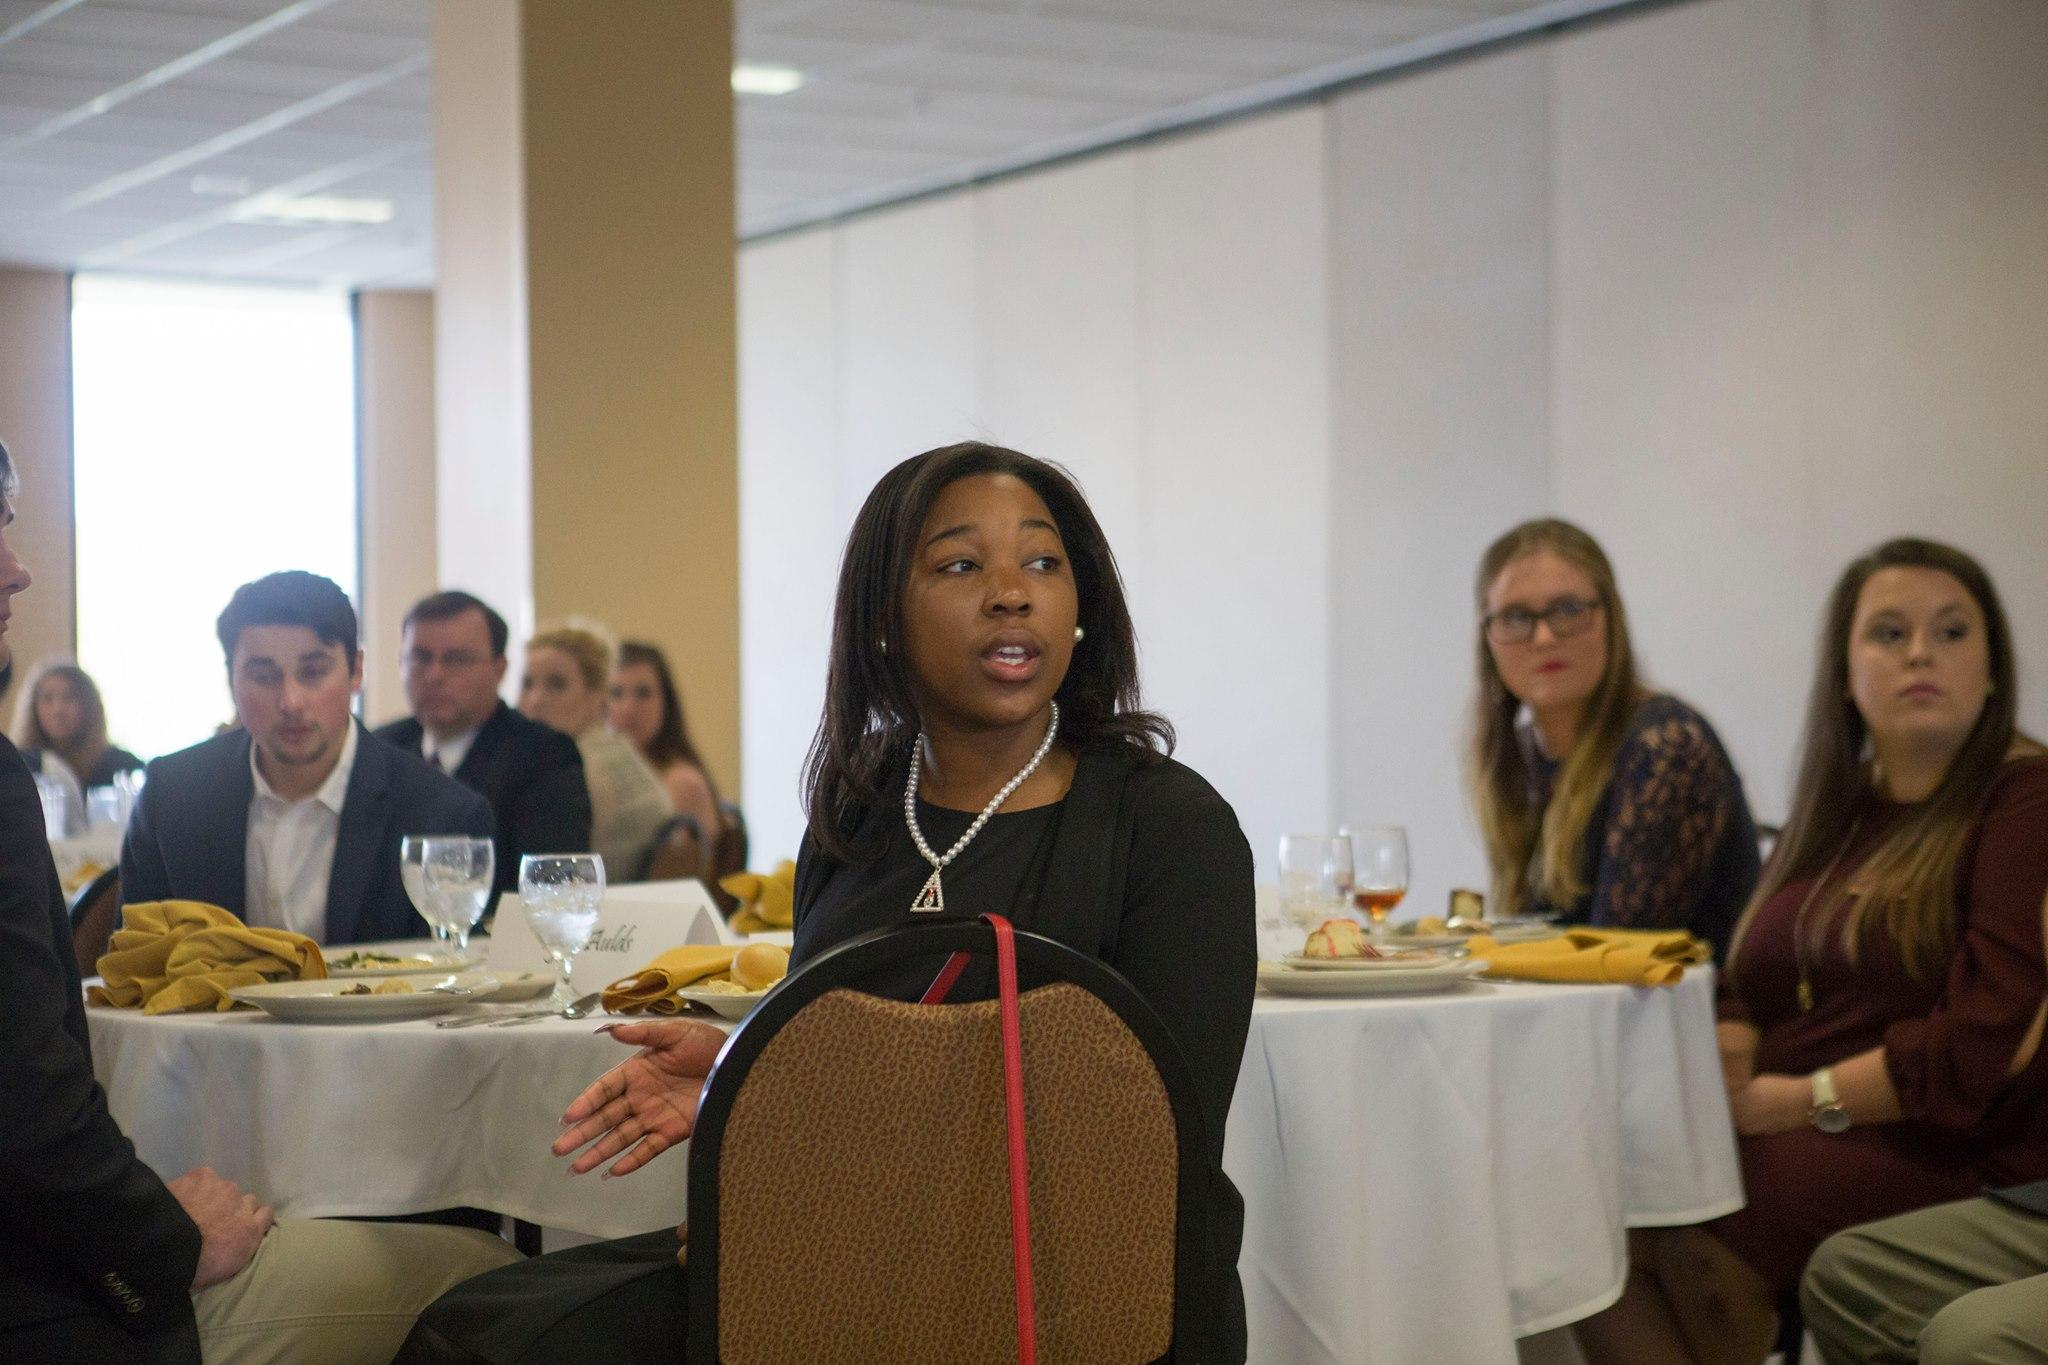 Bria Mays listens to the questions and remarks made at the luncheon.